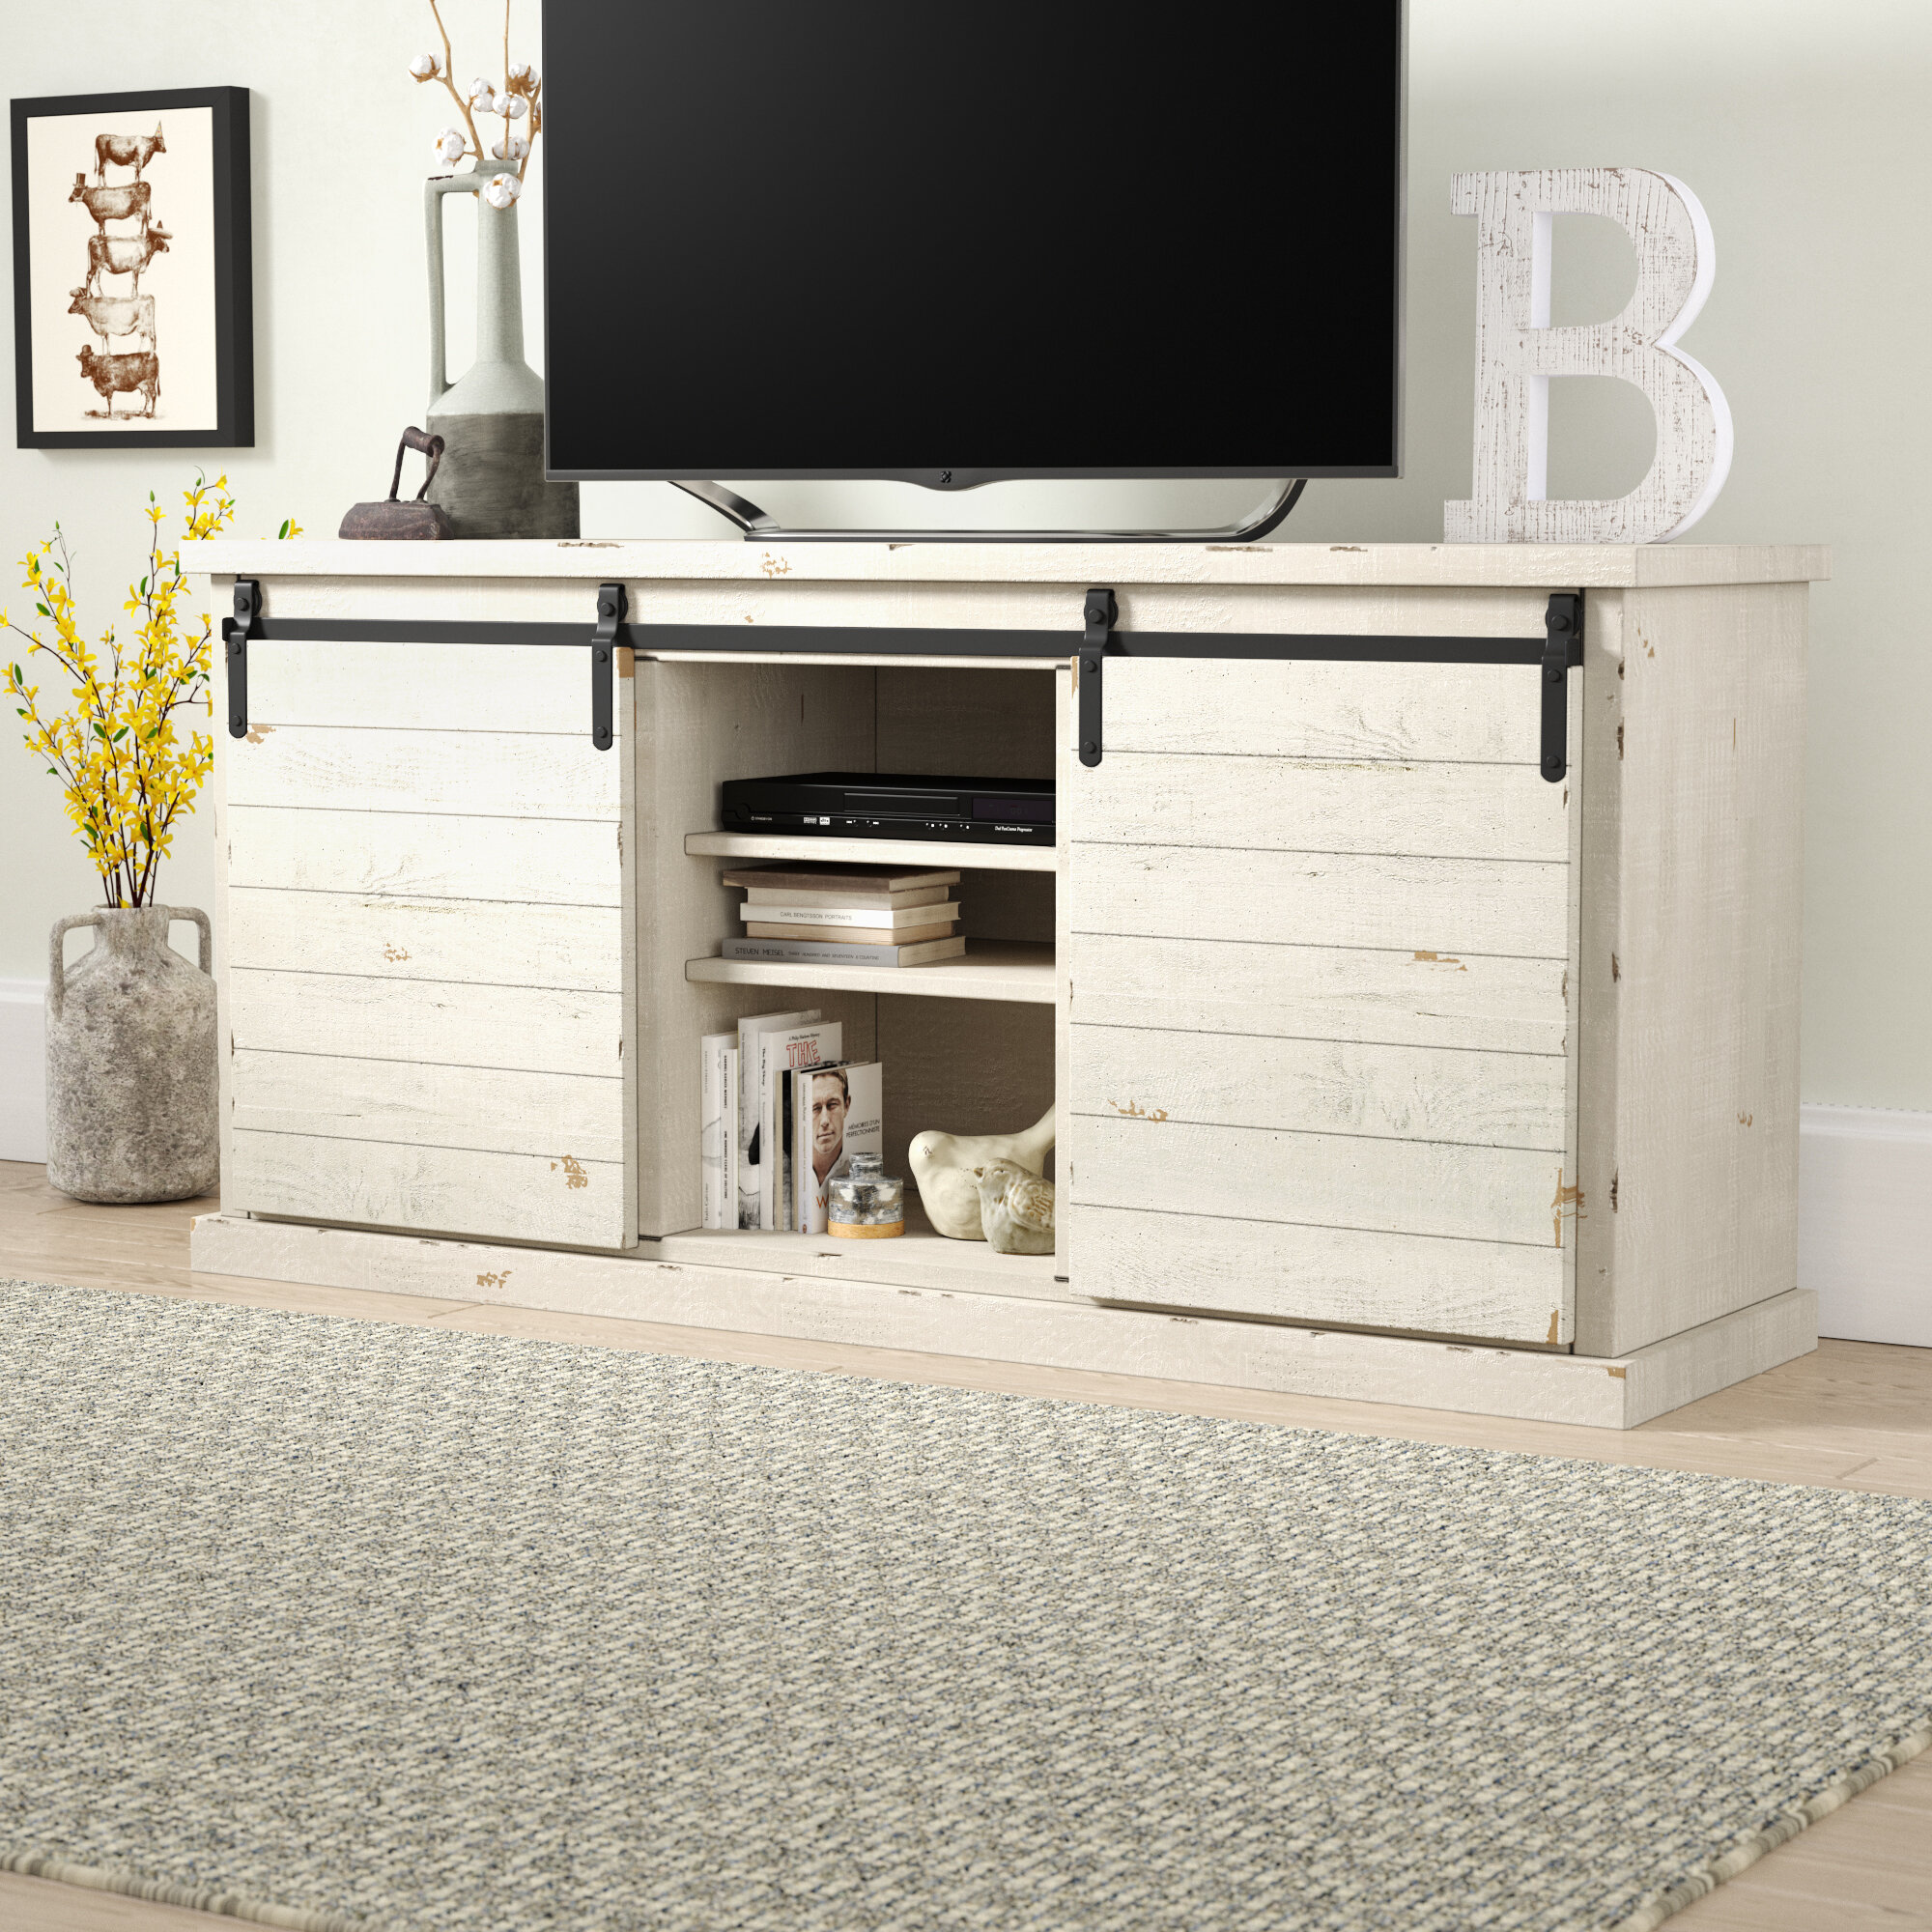 Gracie Oaks Laursen Solid Wood Tv Stand For Tvs Up To 60 Inches Reviews Wayfair Ca